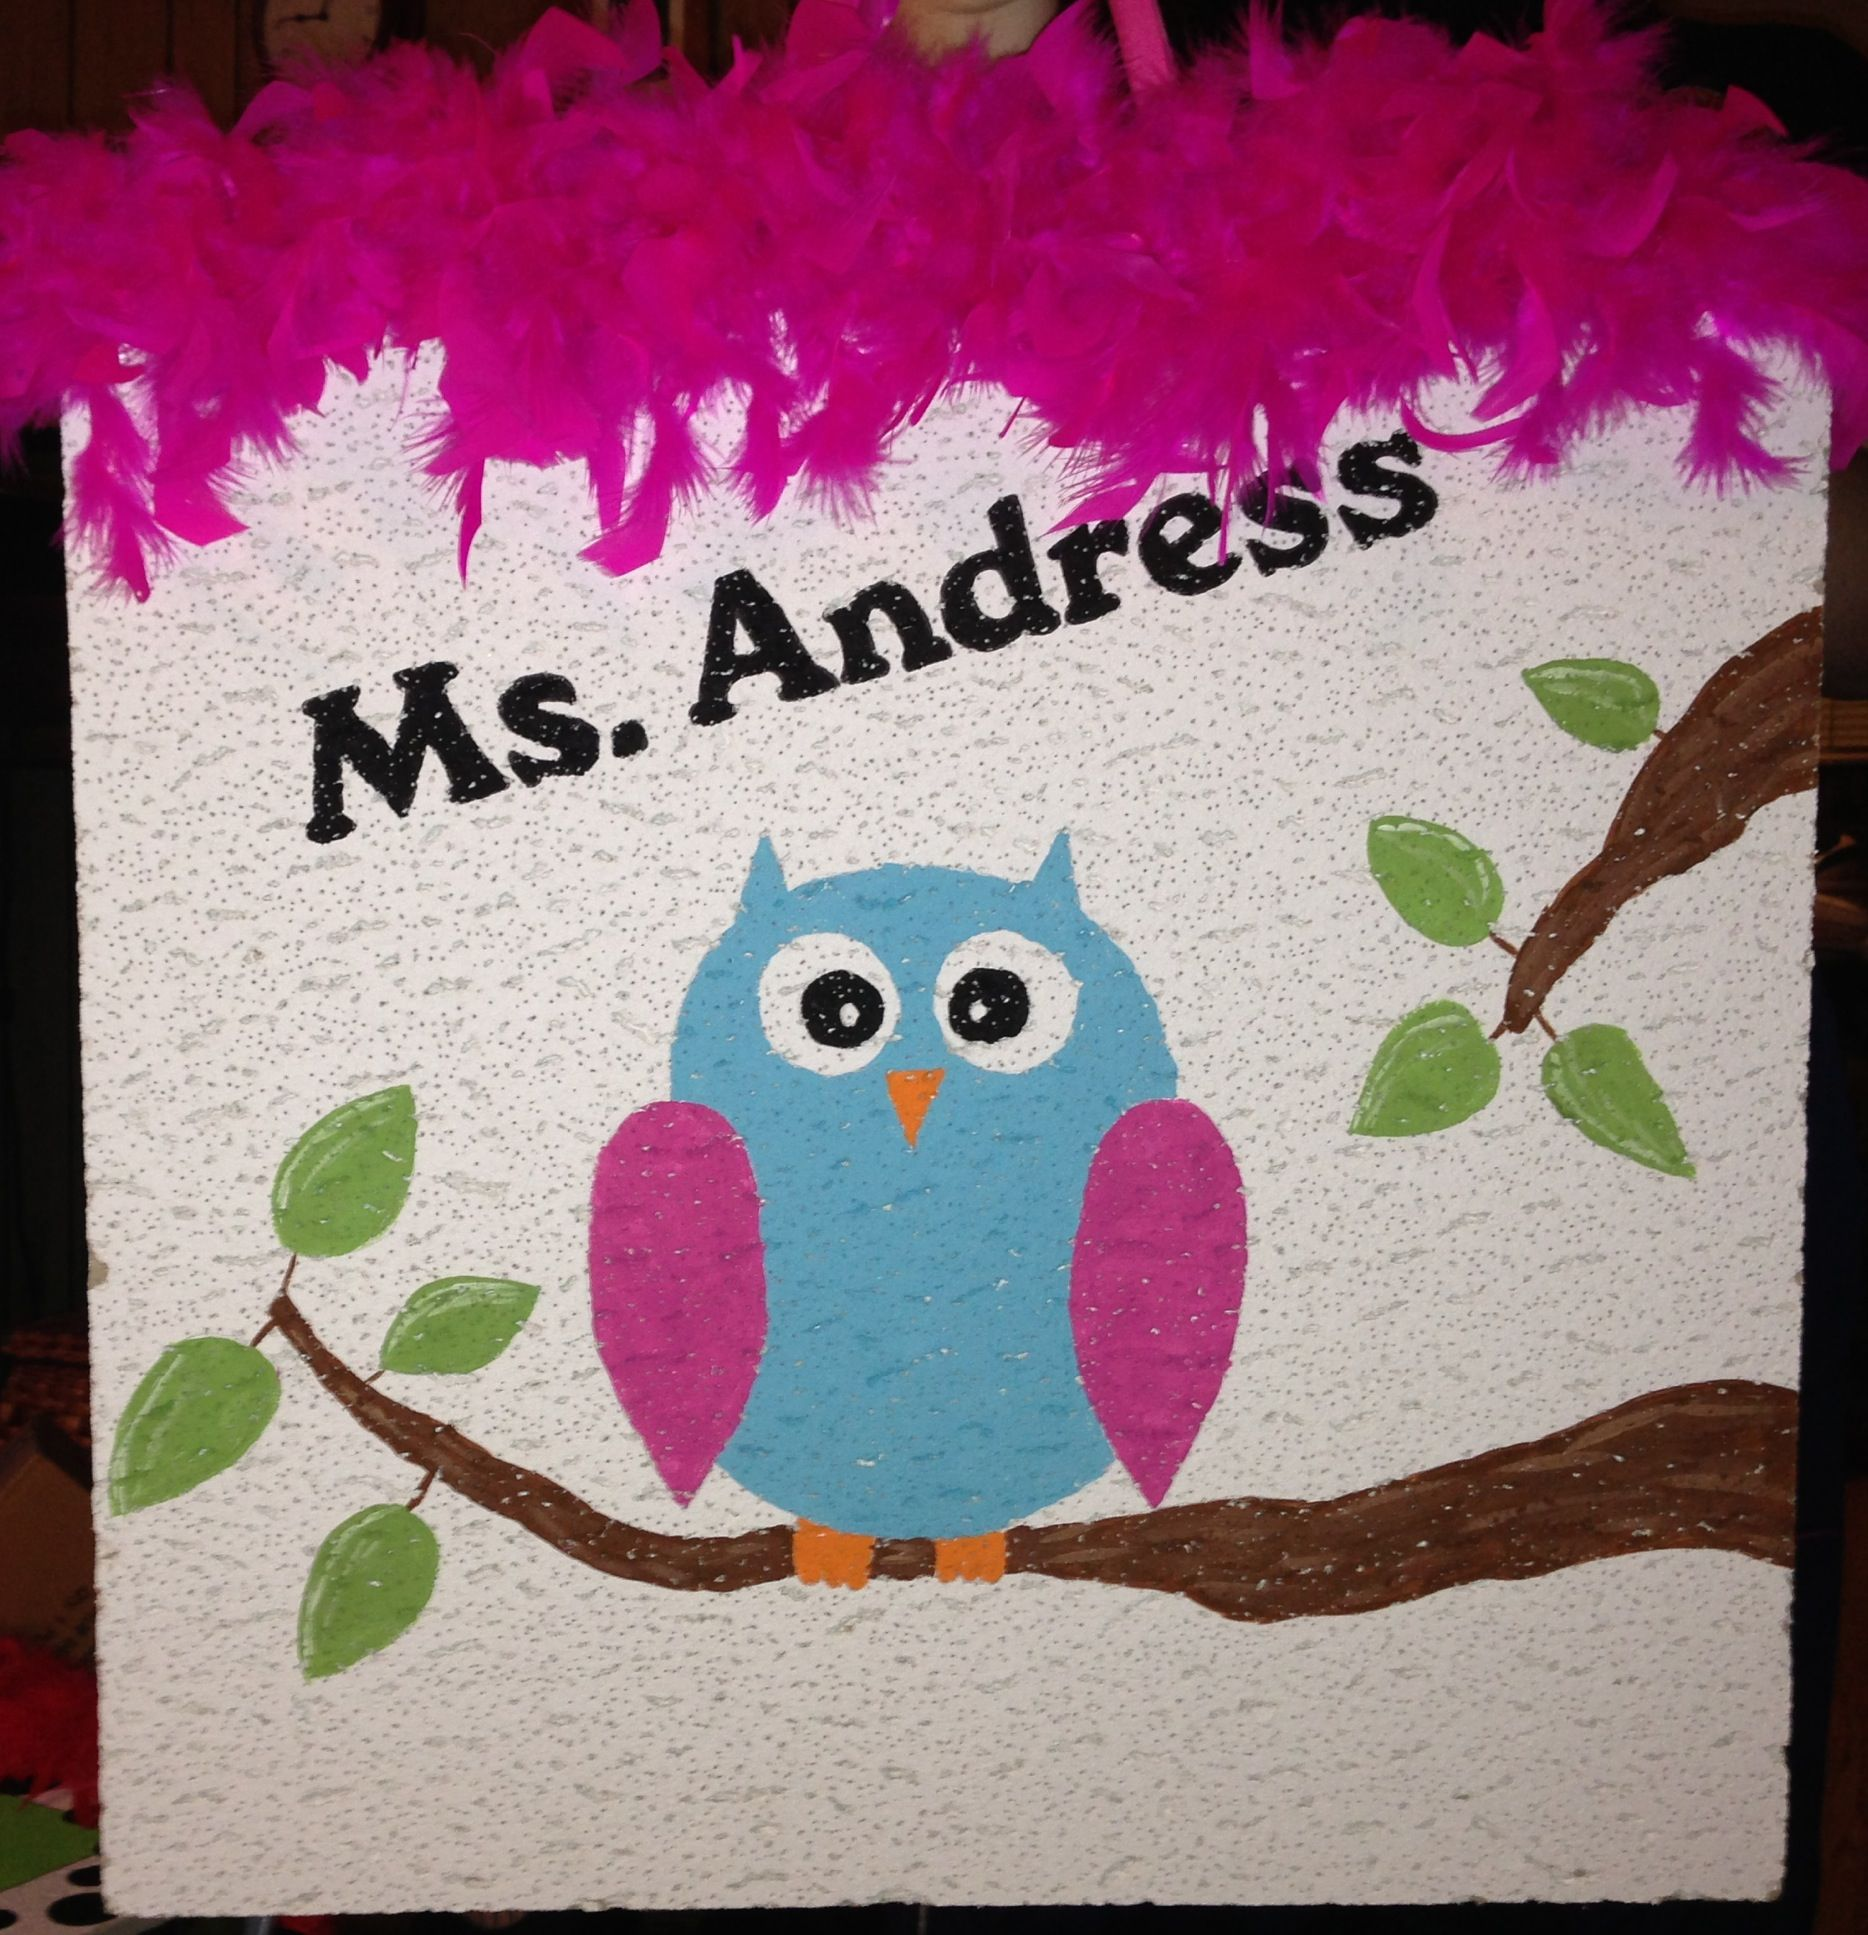 Painted ceiling tile my paint projects pinterest paint painted ceiling tile dailygadgetfo Gallery